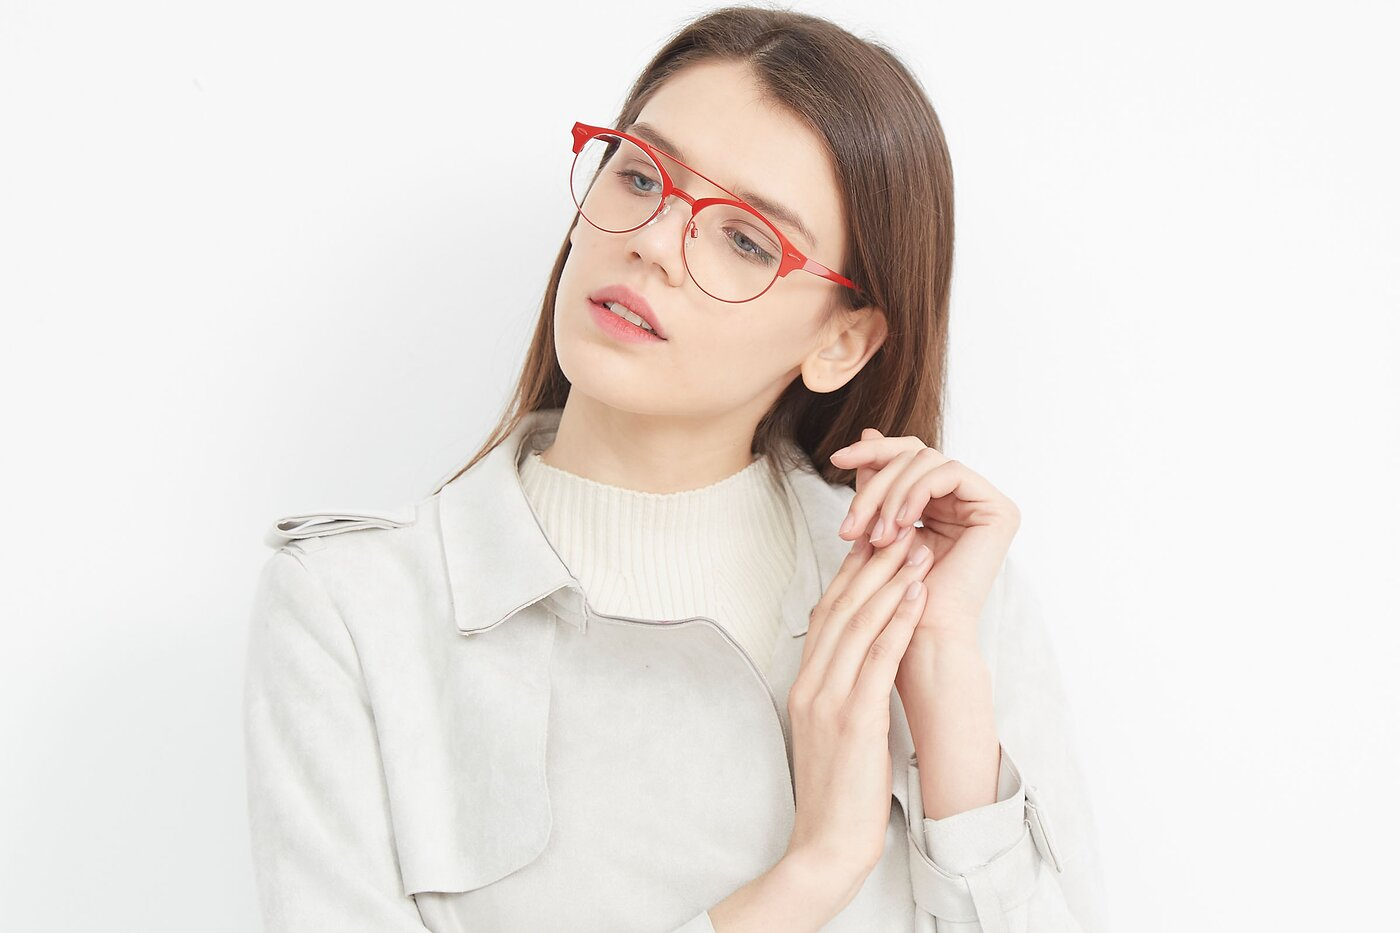 Red Grandpa Retro-Vintage Double Bridge Eyeglasses